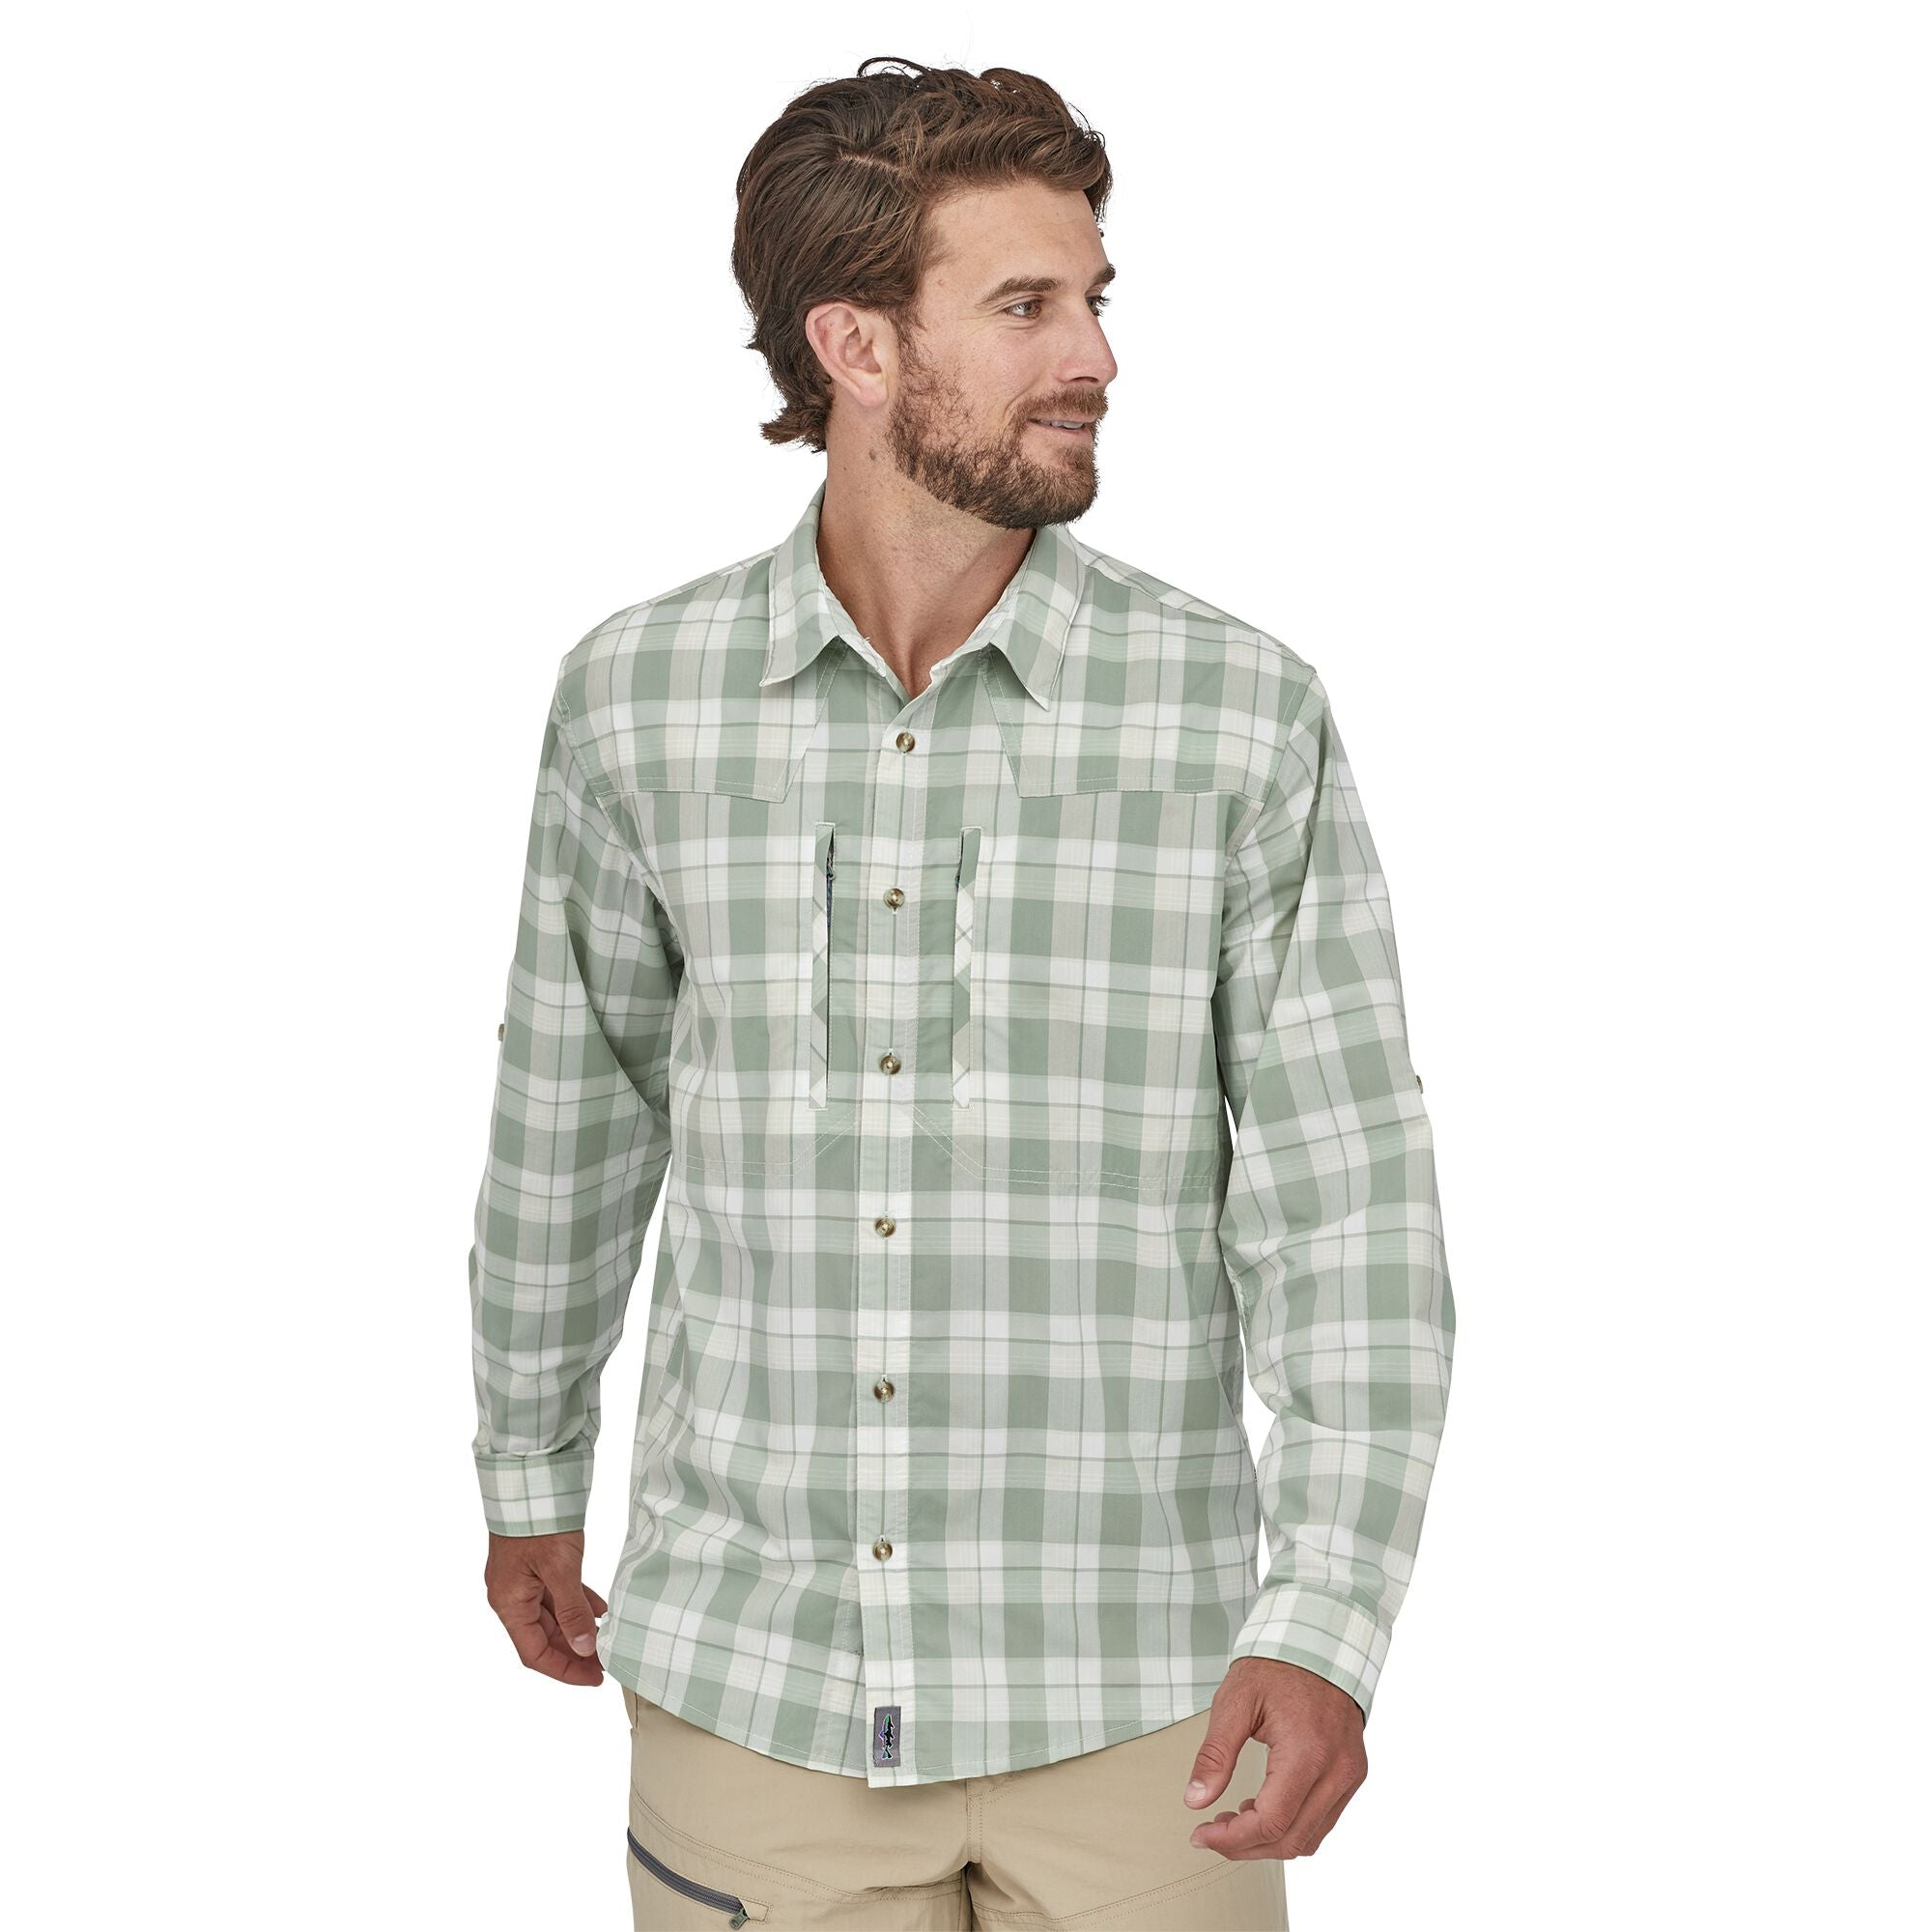 Camisa Hombre Manga Larga Long–Sleeved Sun Stretch Shirt Verde Patagonia